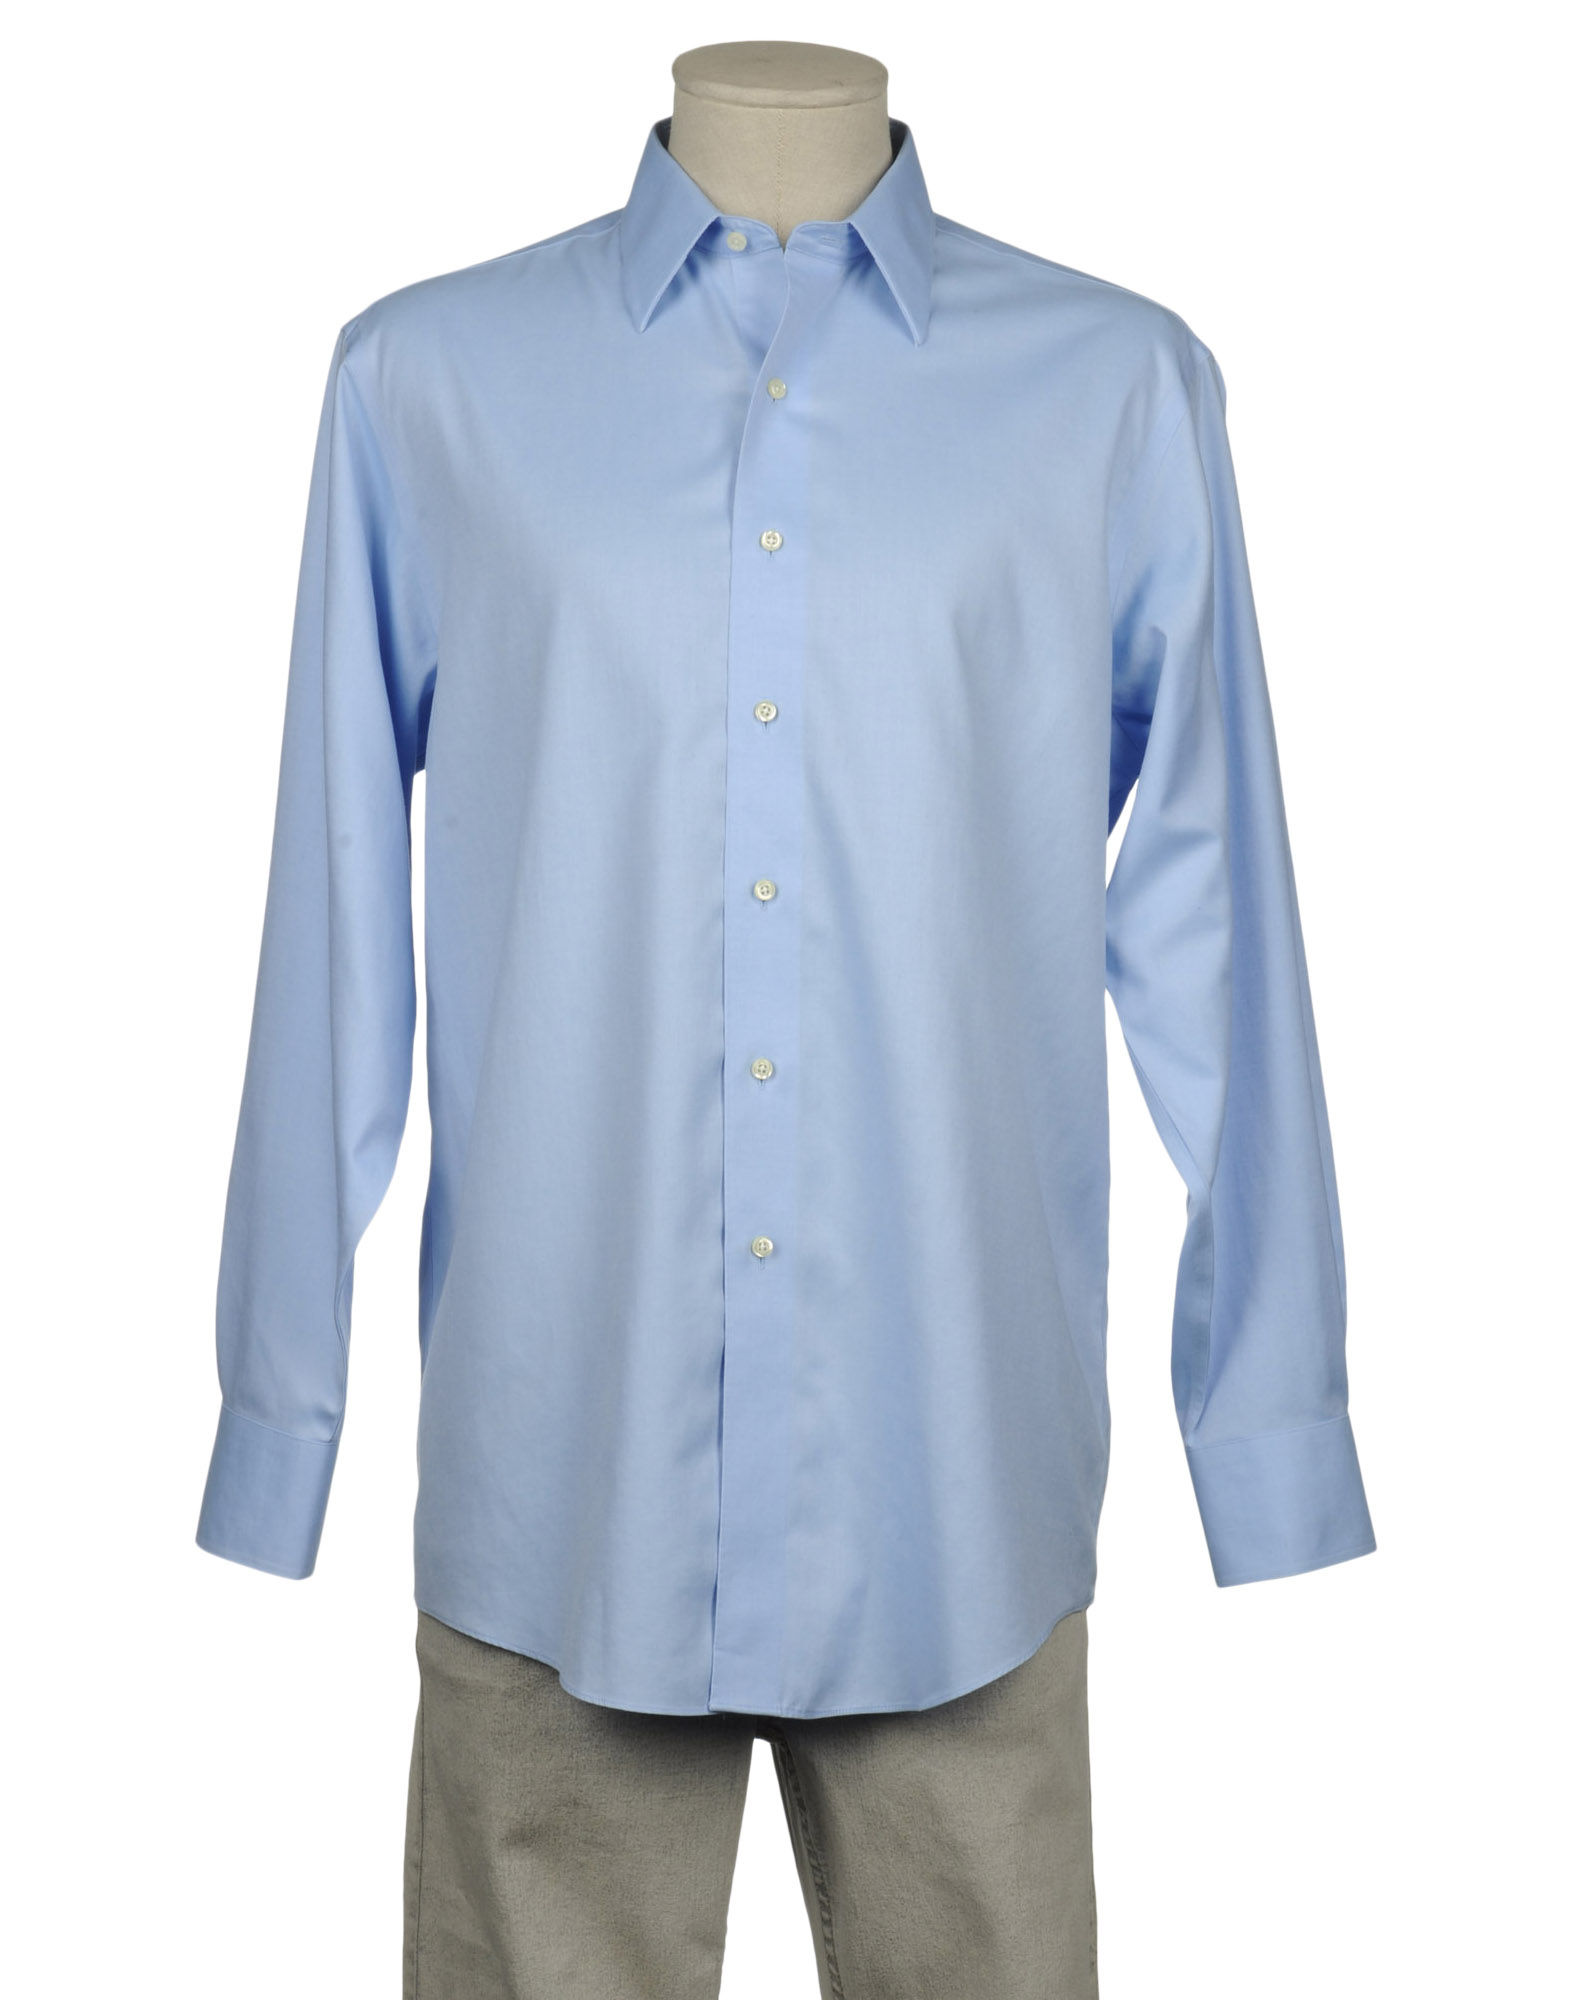 Brooks brothers long sleeve shirt in blue for men lyst for Brooks brothers shirt size guide